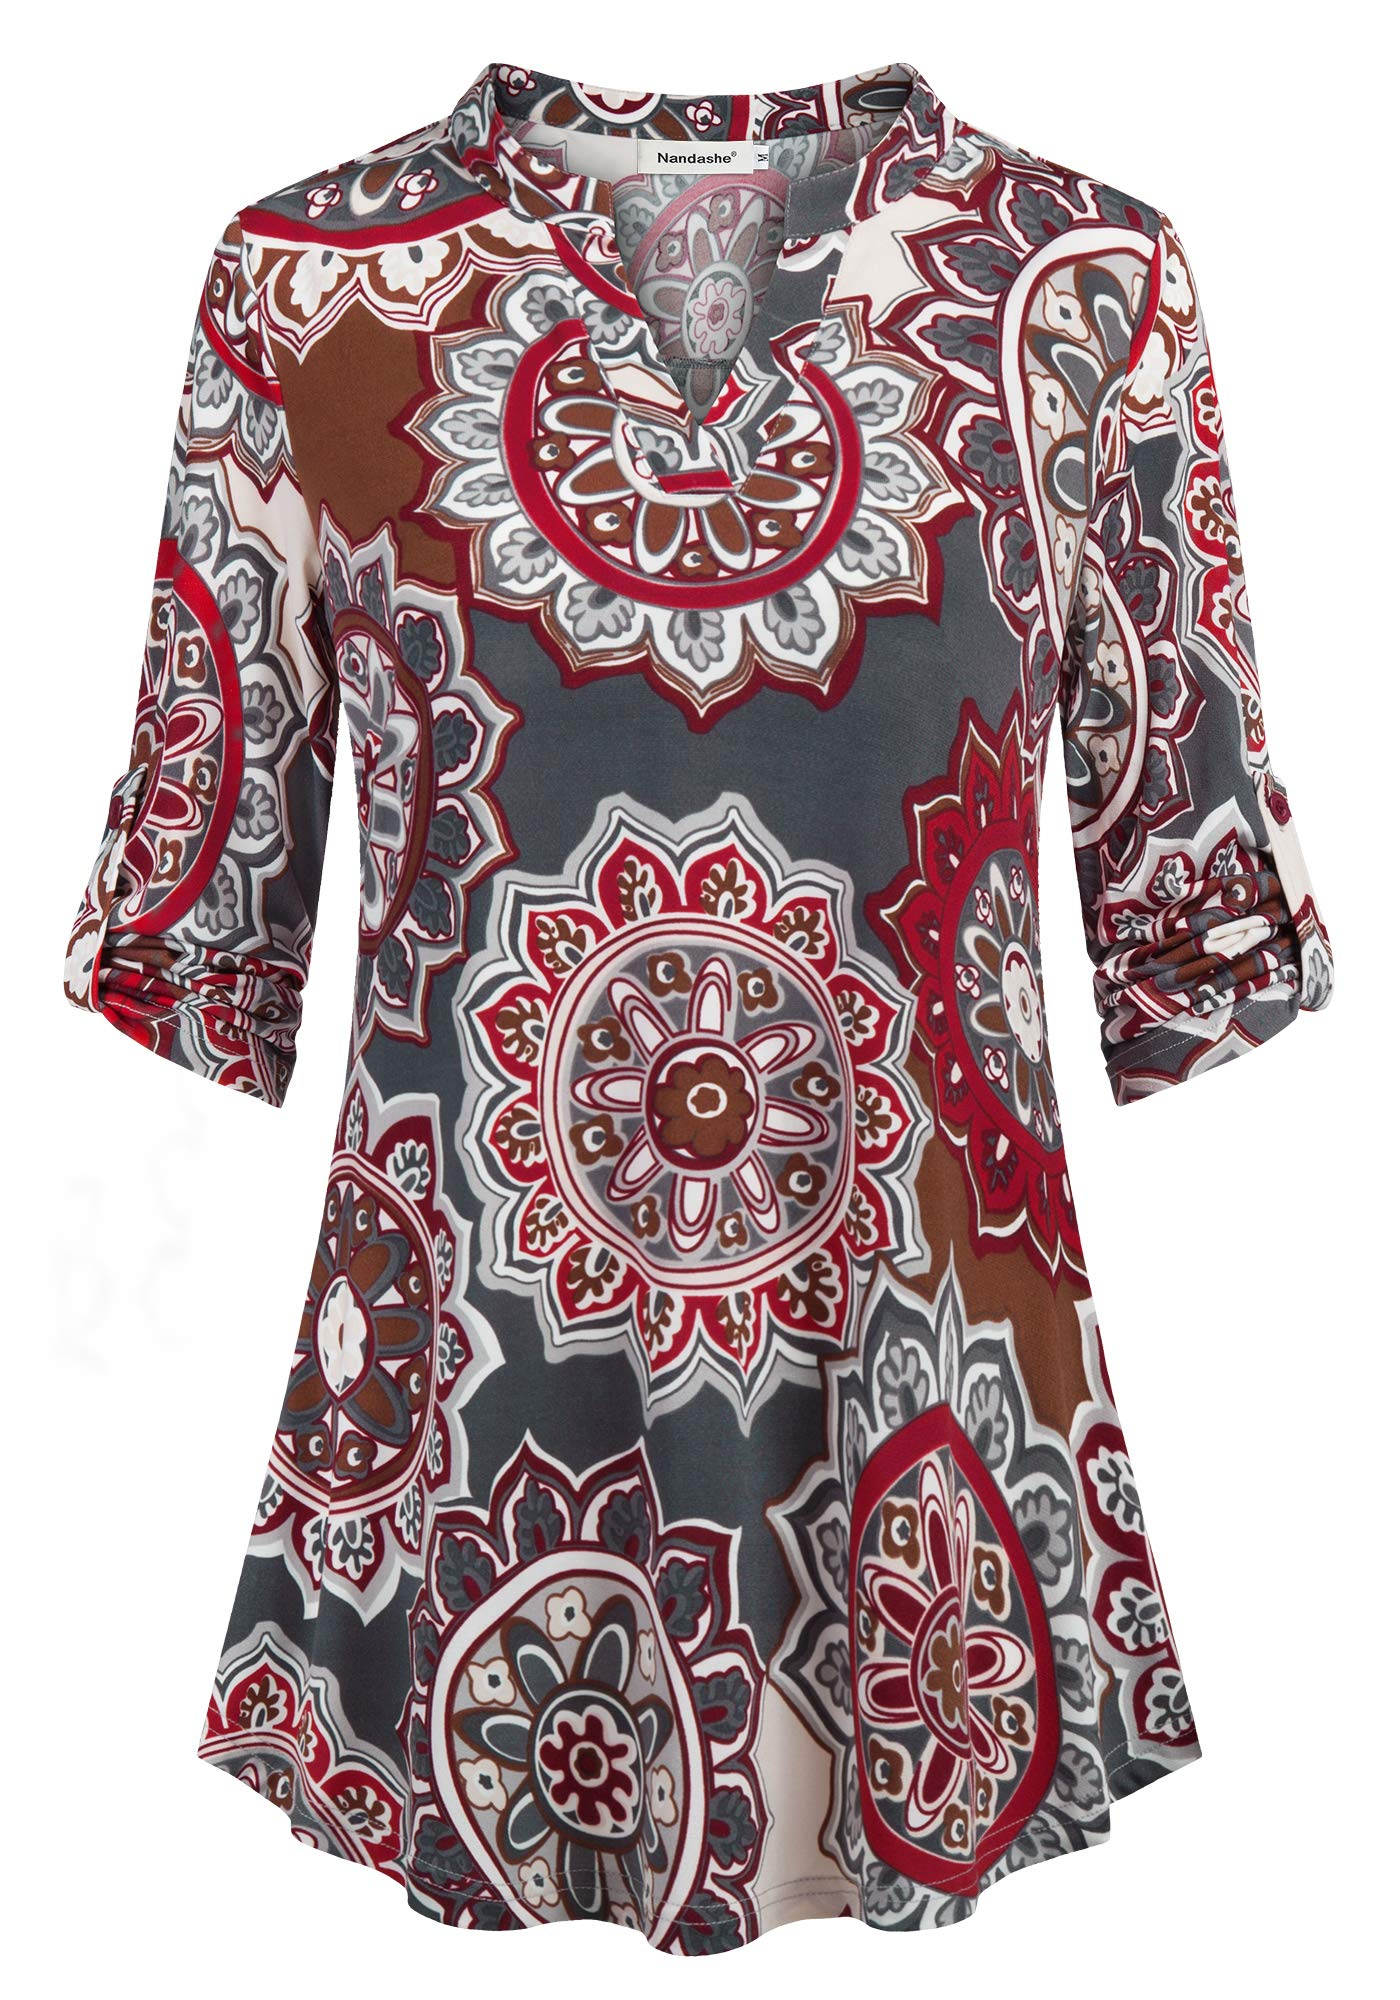 Nandashe Chiffon Blouses for Women 3/4 Sleeve, Women's Sheer Button up Long Sleeve Tunic Blouses Comfy Lightweight Floral Chiffon Blouse Shirt Casual Business Work V Neck Flowy Tops Grey Red M